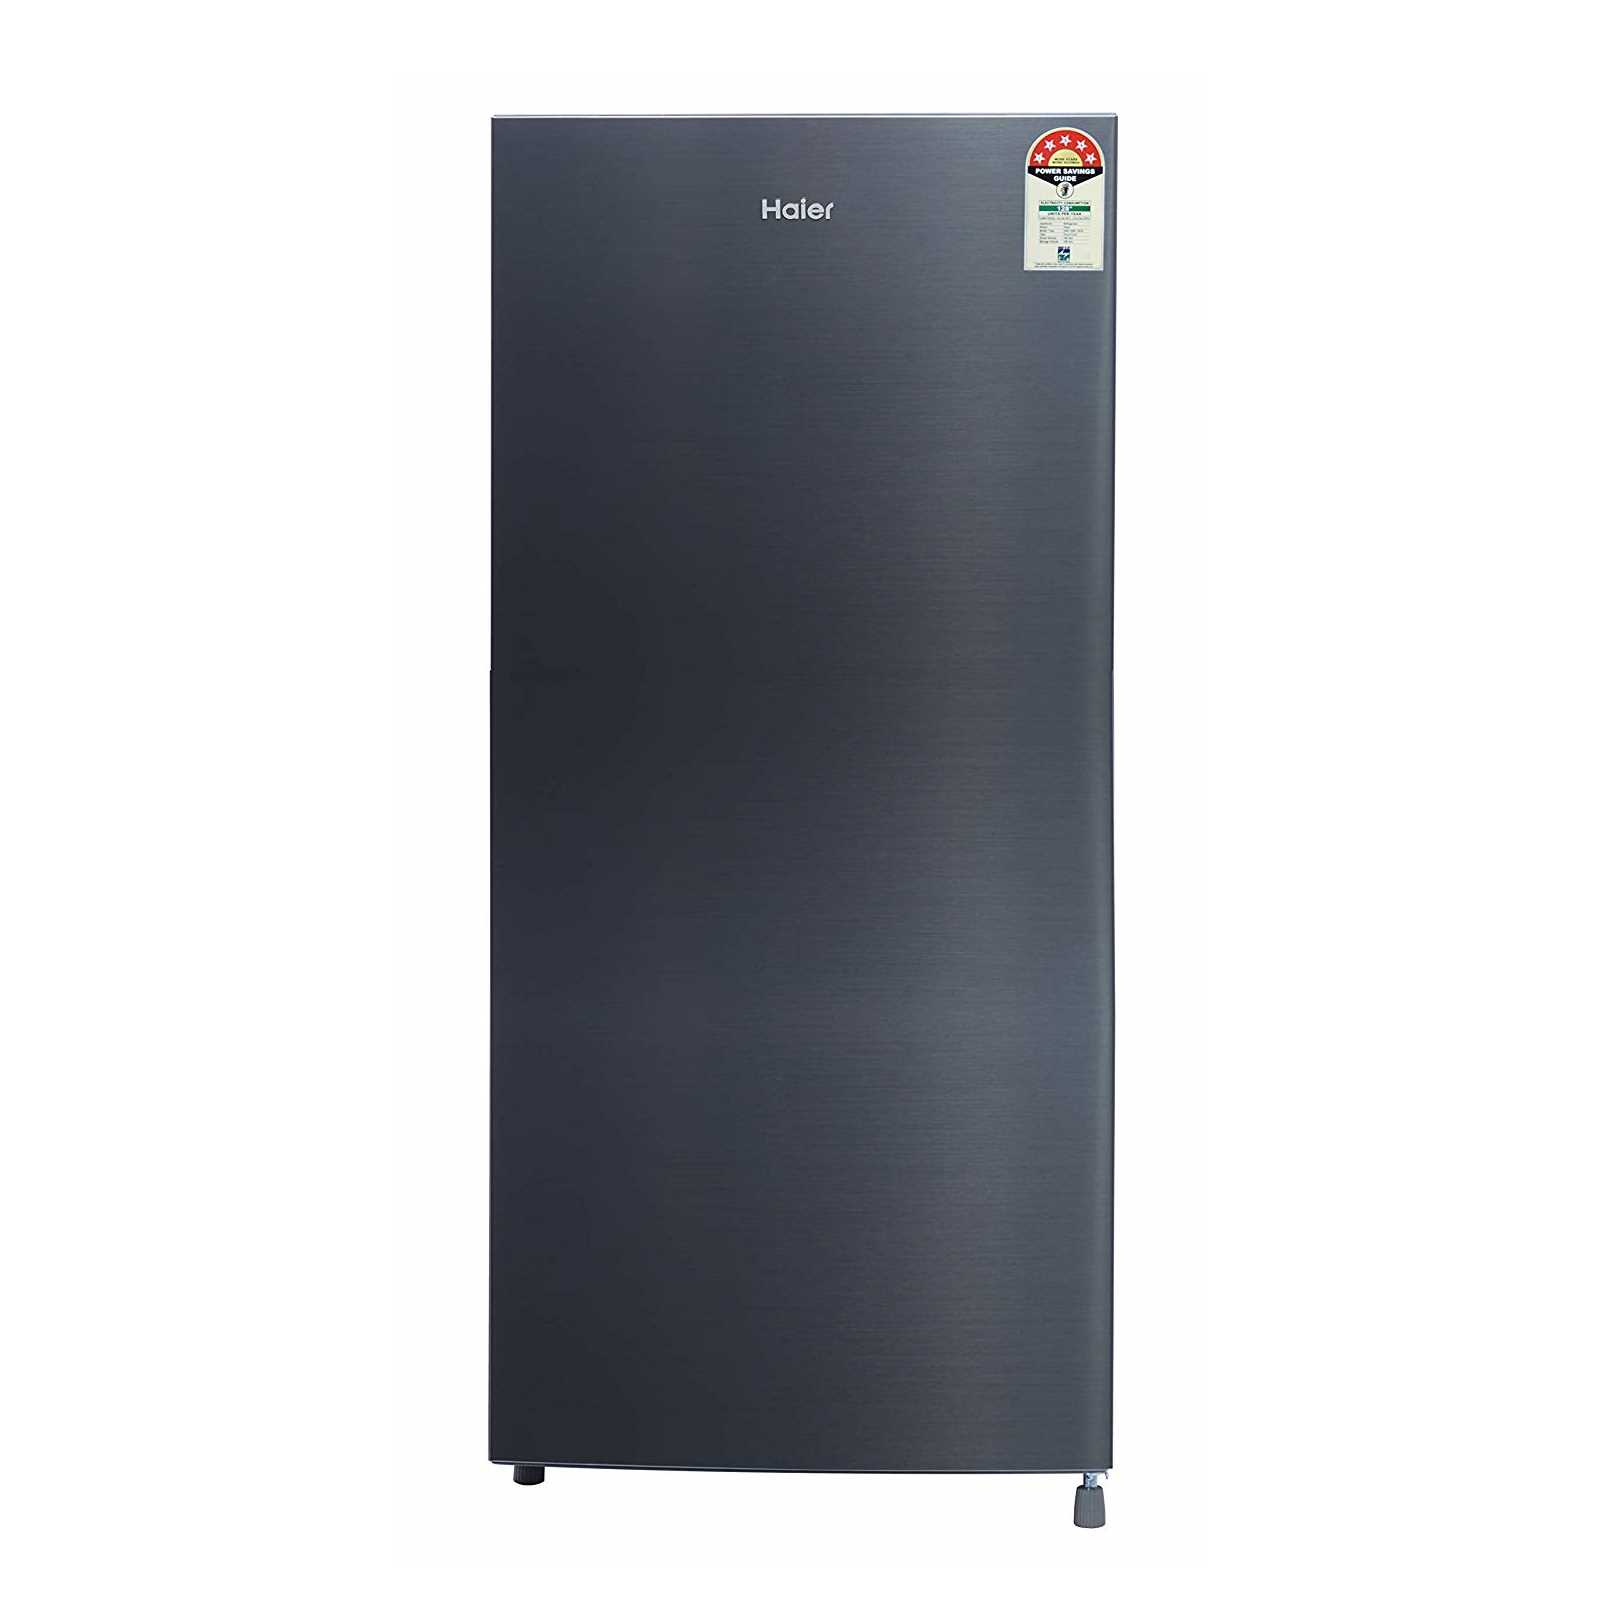 Haier HRD 1955CSS E 195 Litre Direct Cool Single Door Refrigerator